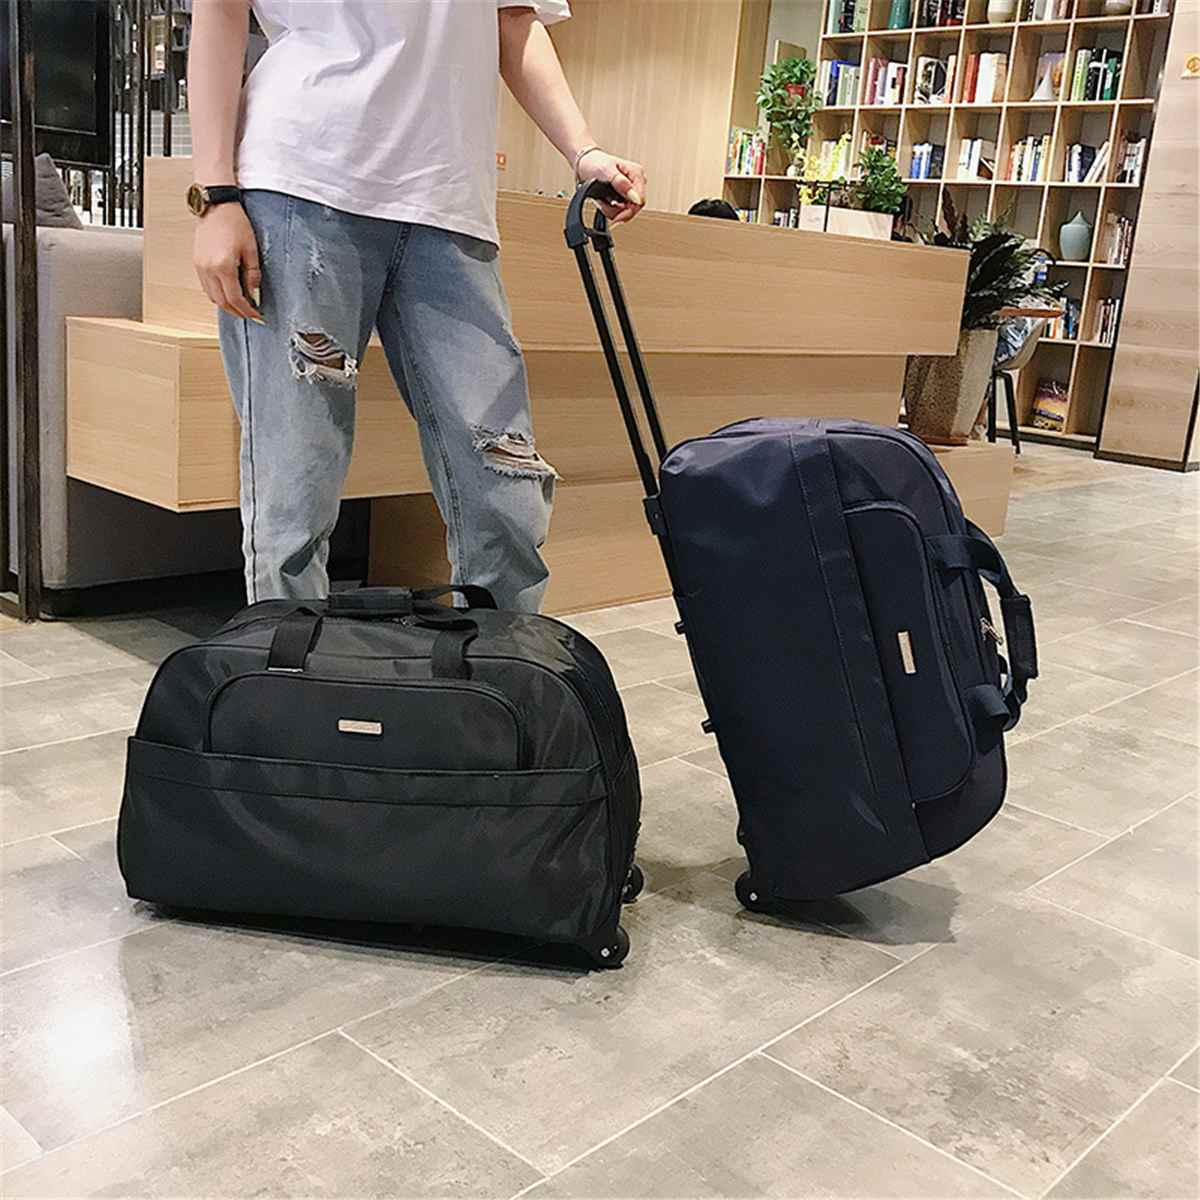 Color Luggage Bag New Fashion Travel Duffle Trolley Bag Rolling Suitcase Trolley Women Men Travel Bags With Wheel Carry-On Bag